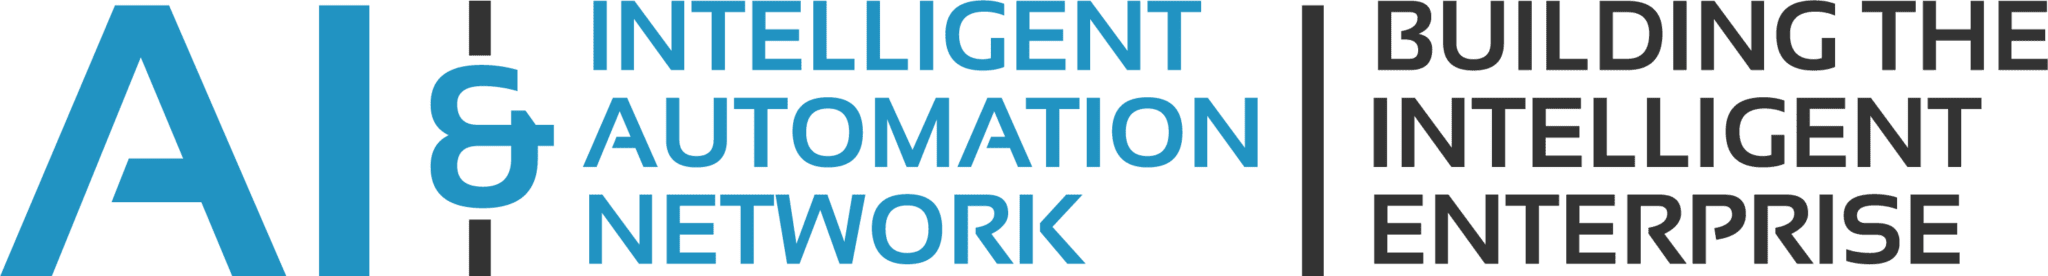 Cortex joins the AI-Intelligent Automation Network Advisory Board